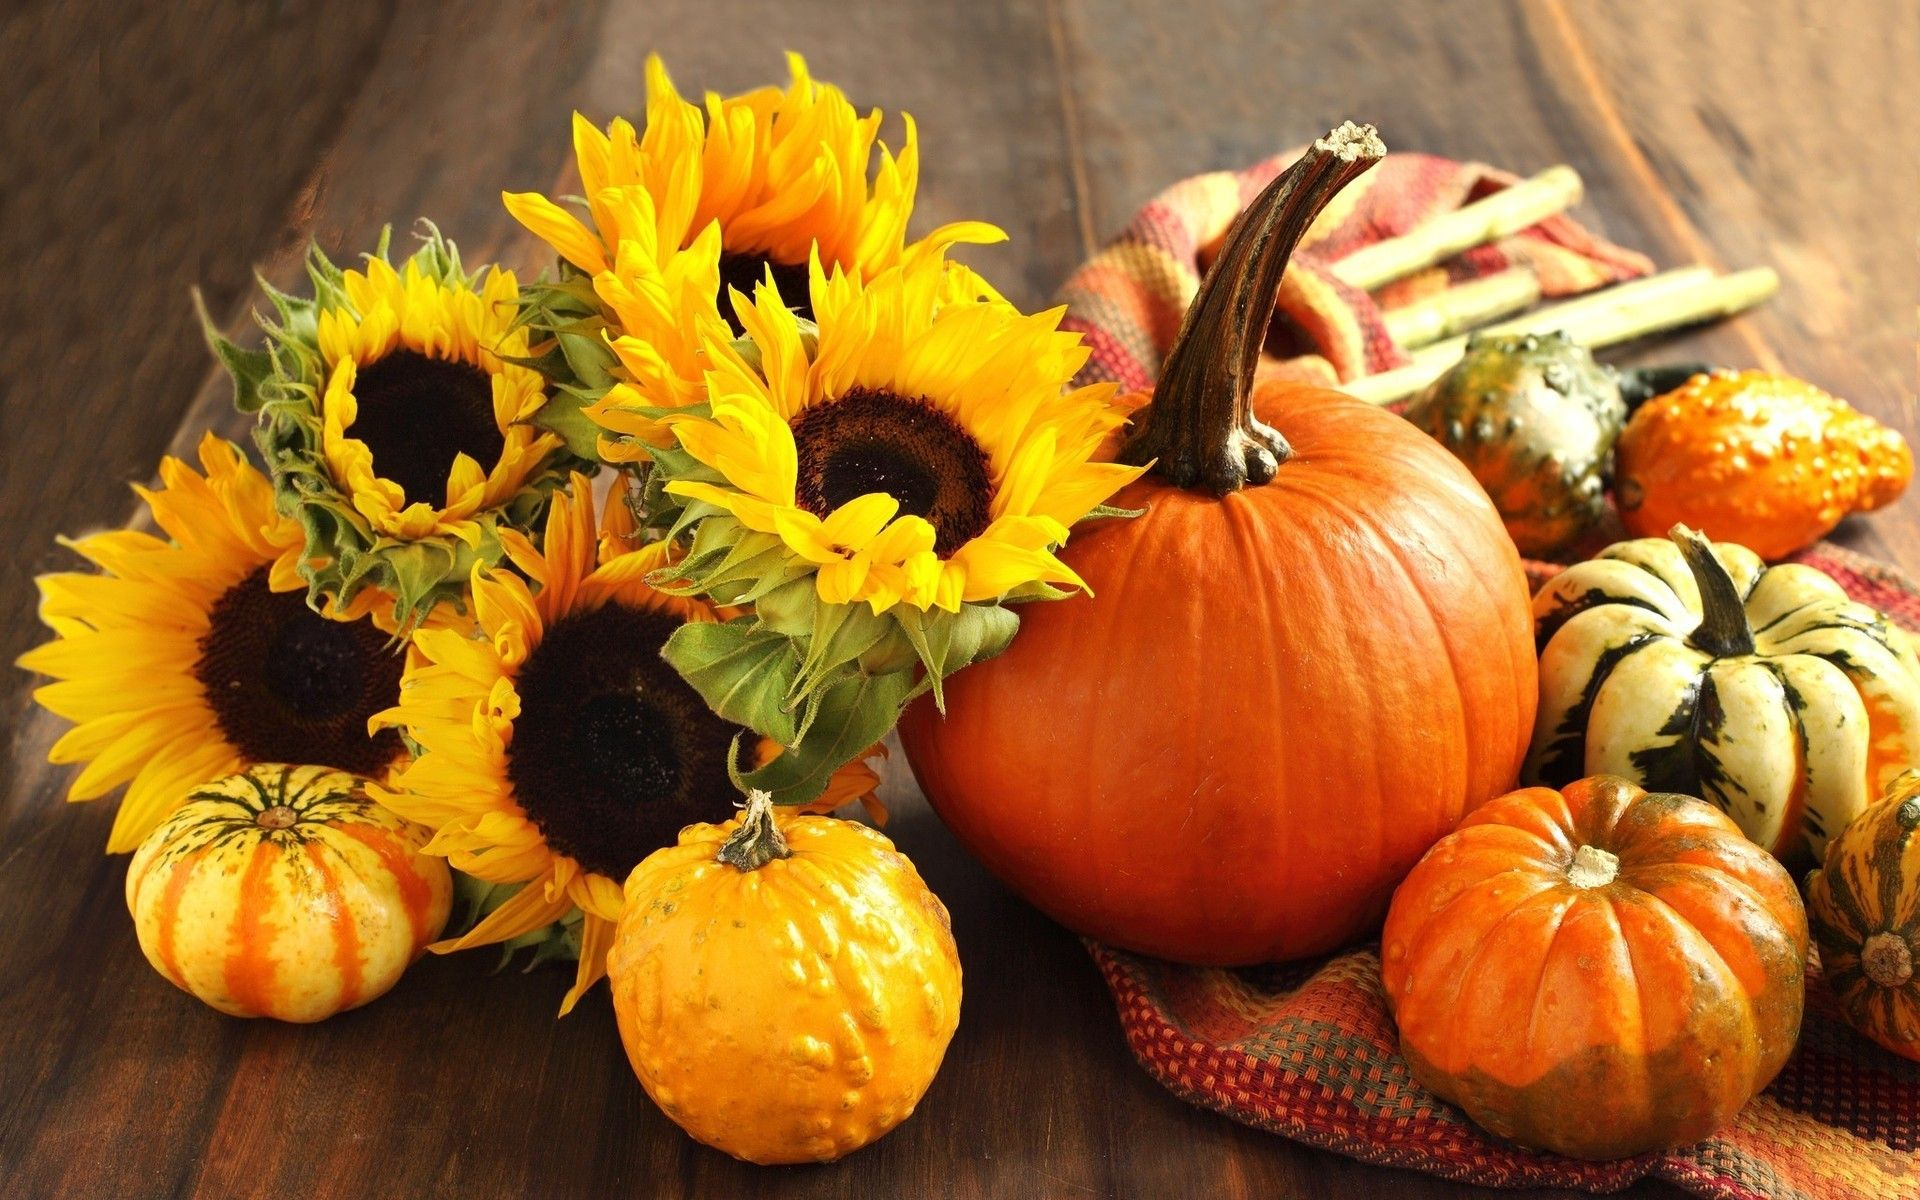 fall backgrounds with pumpkins